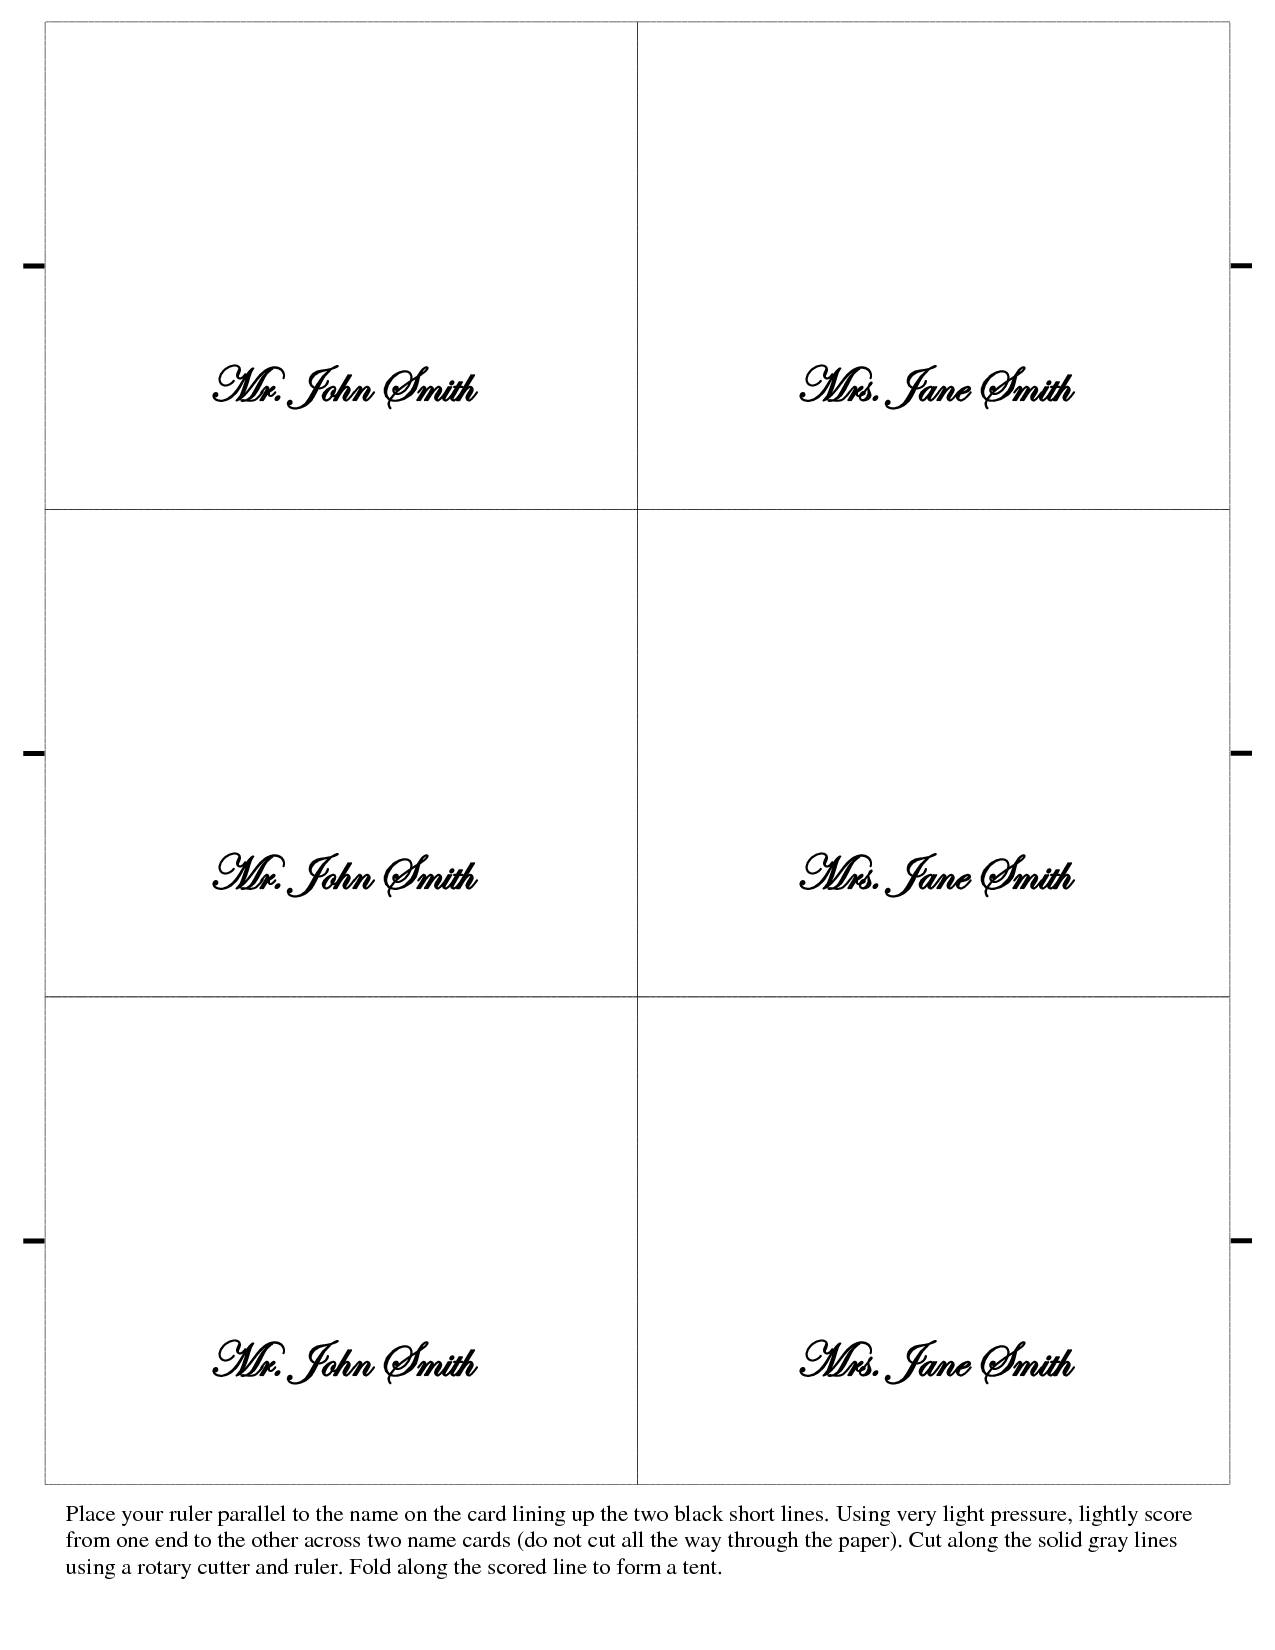 Free Place Card Templates 6 Per Page - Atlantaauctionco With Free Place Card Templates 6 Per Page